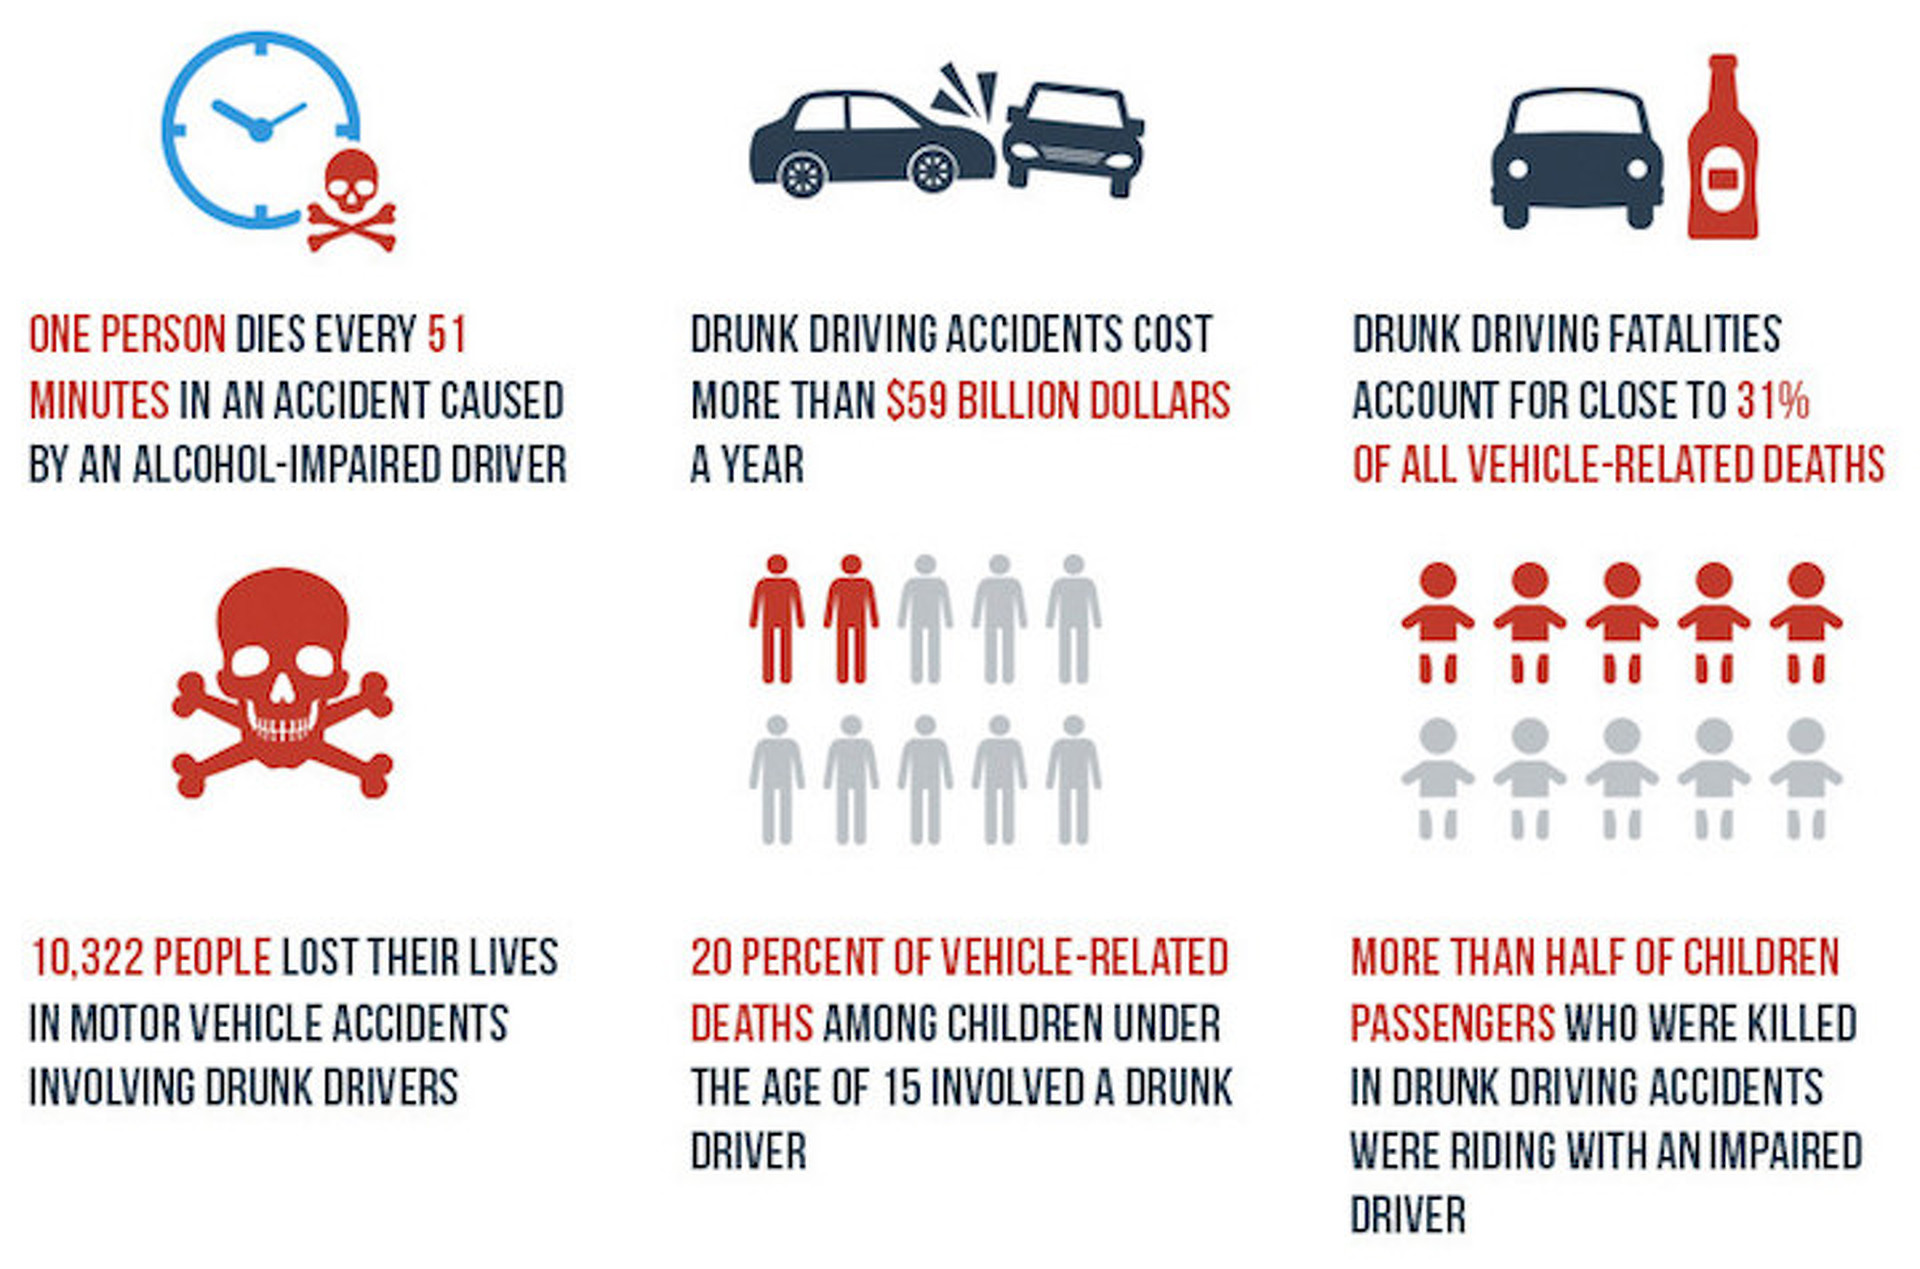 Remember to Stay Safe and Sober on the Roads This Holiday Season